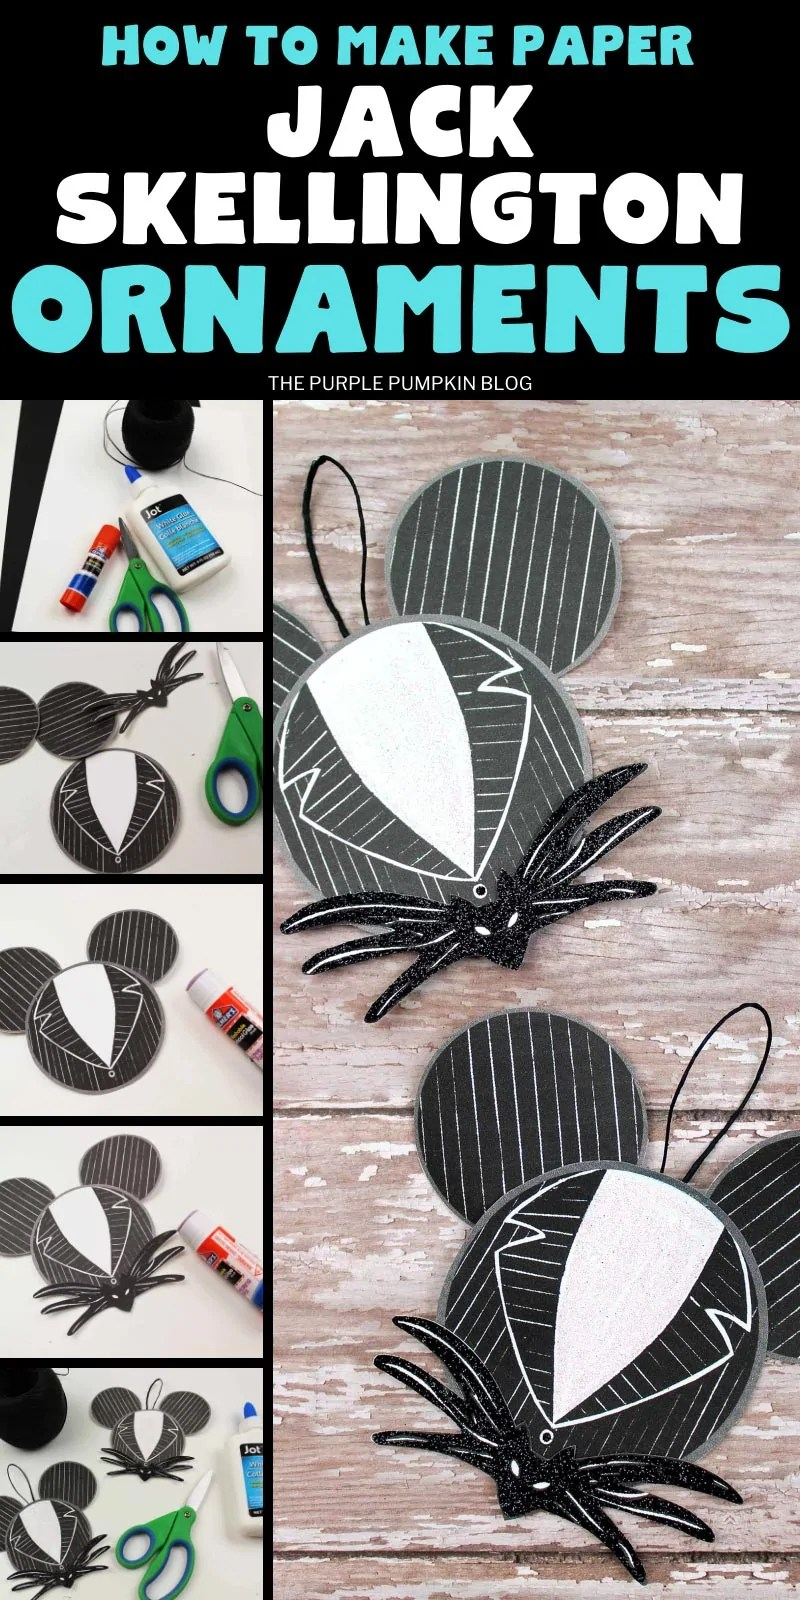 How to make Jack Skellington ornaments (step by step photos)